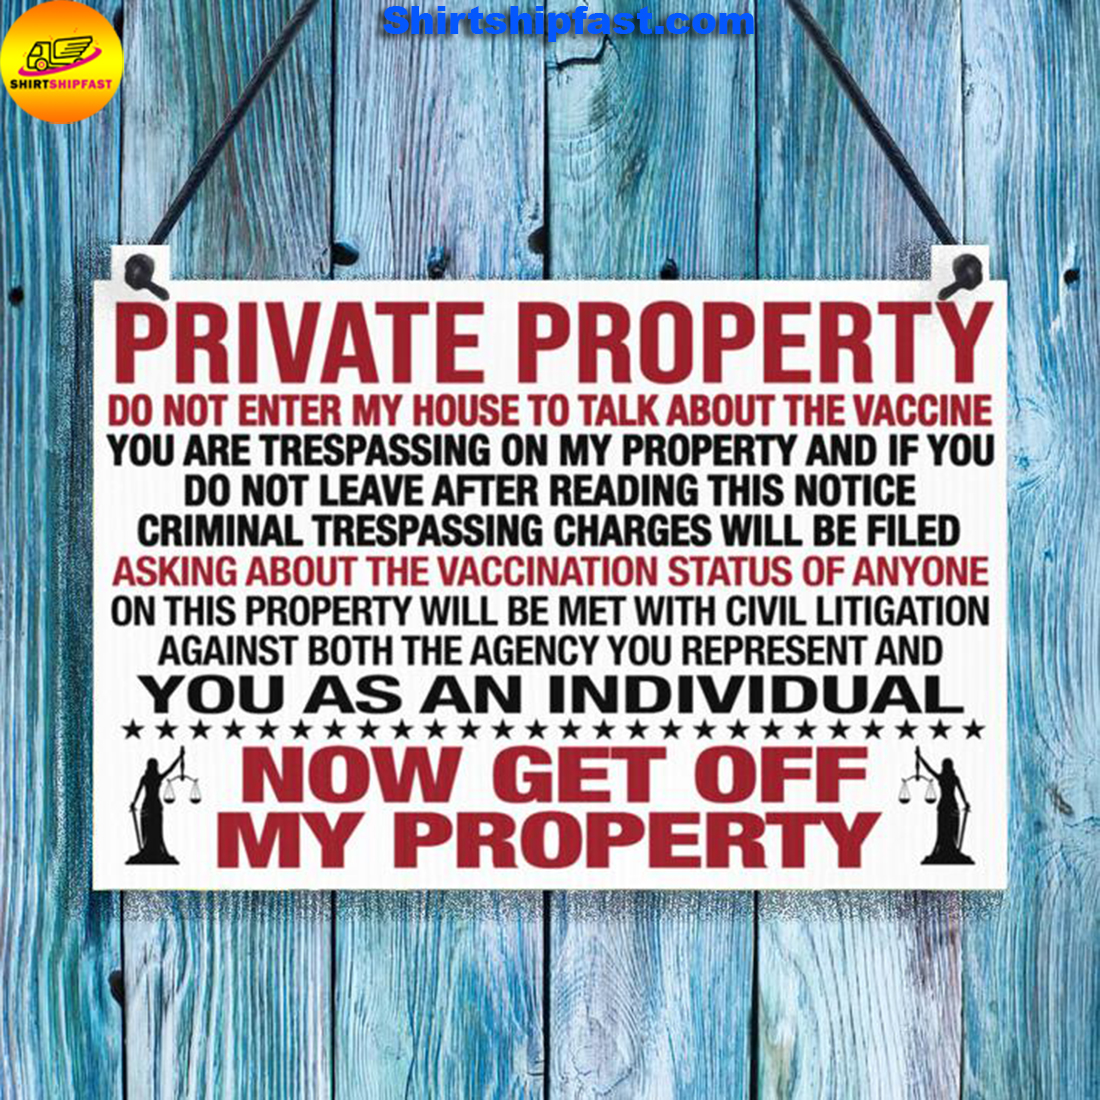 Private property do not enter my house to talk about the vaccine hanging sign